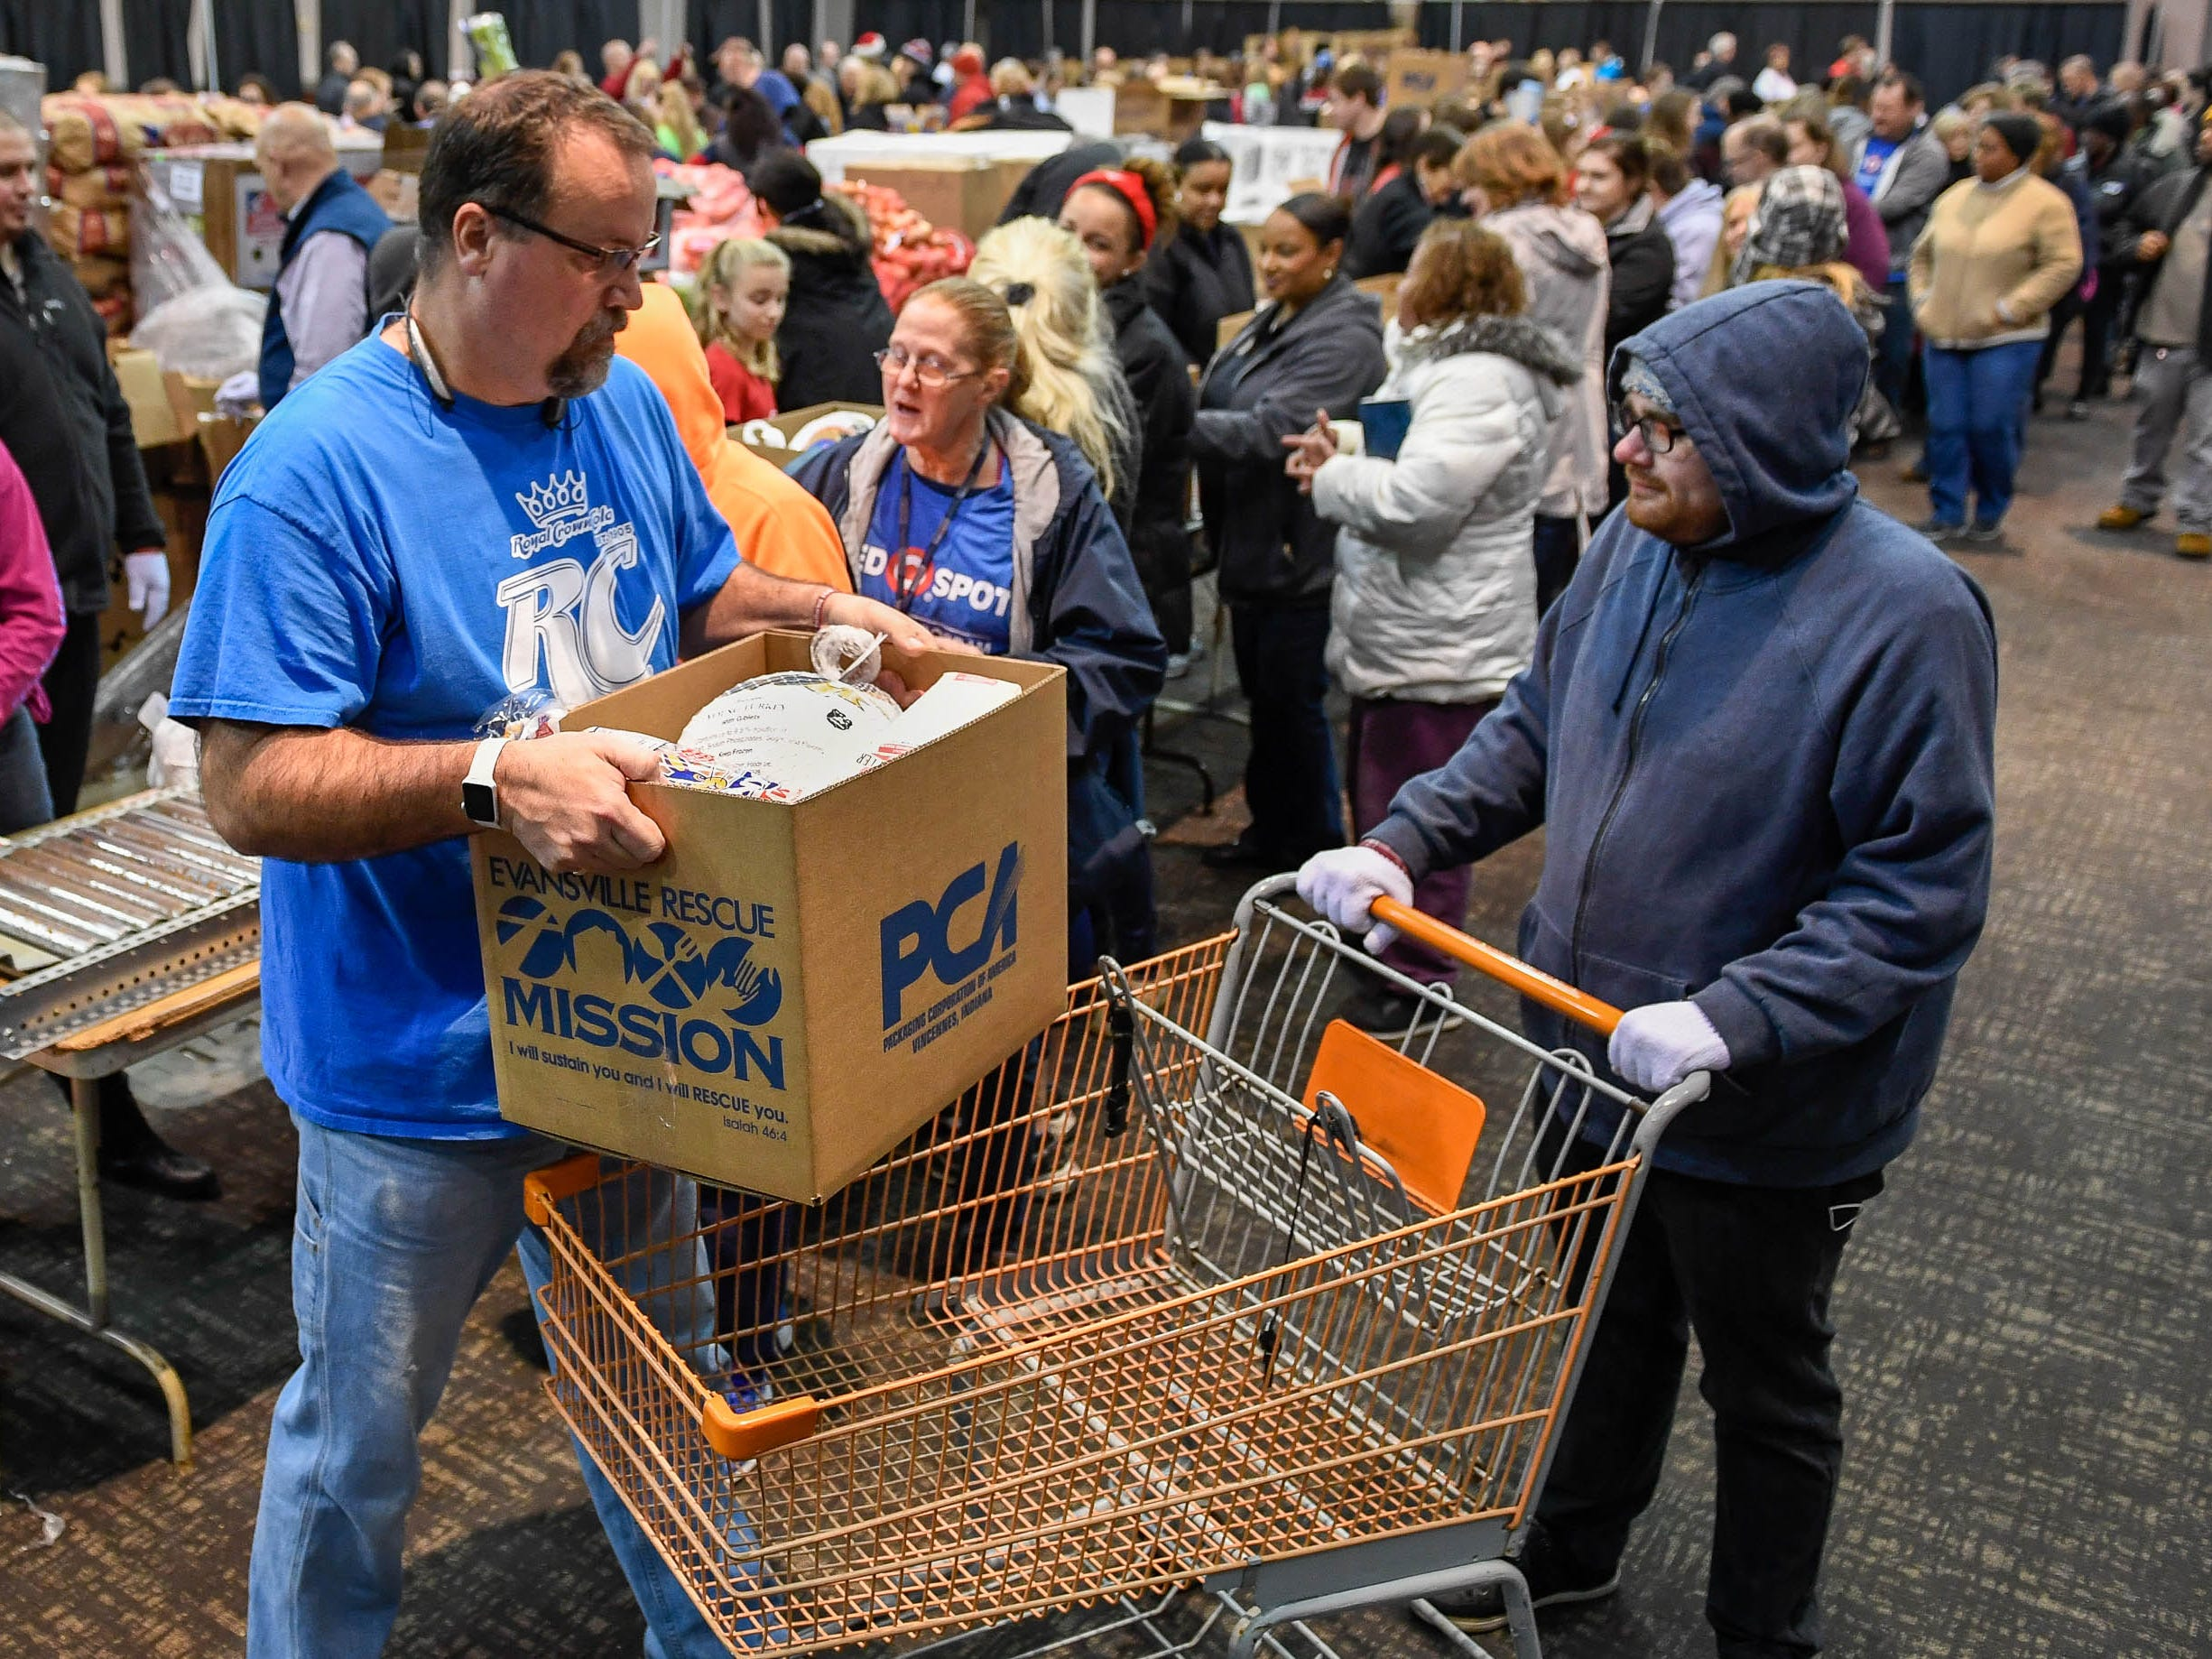 Volunteers Javan Anderson puts a loaded food box into a cart so Jaymes Harmon can take to the parking lot at the Evansville Rescue Mission's 96th annual Gobbler Gathering held at the Old National Events Plaza Tuesday, November 20, 2018.